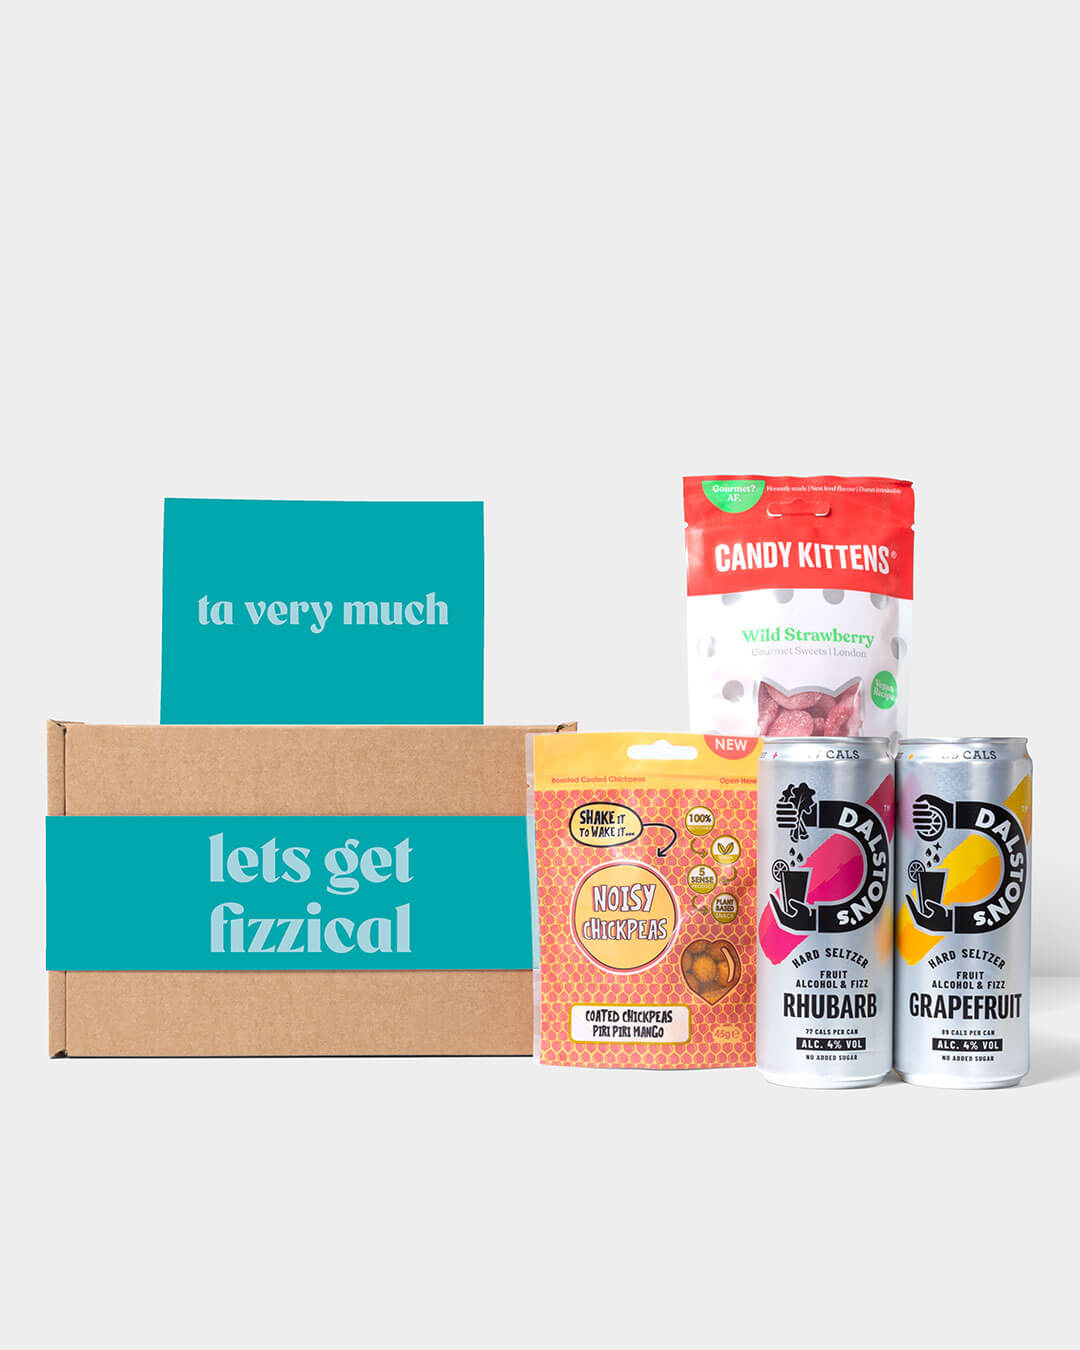 Hard seltzer box and contents including Dalston's hard seltzer cans, Noisy Snacks & Candy Kitten sweets